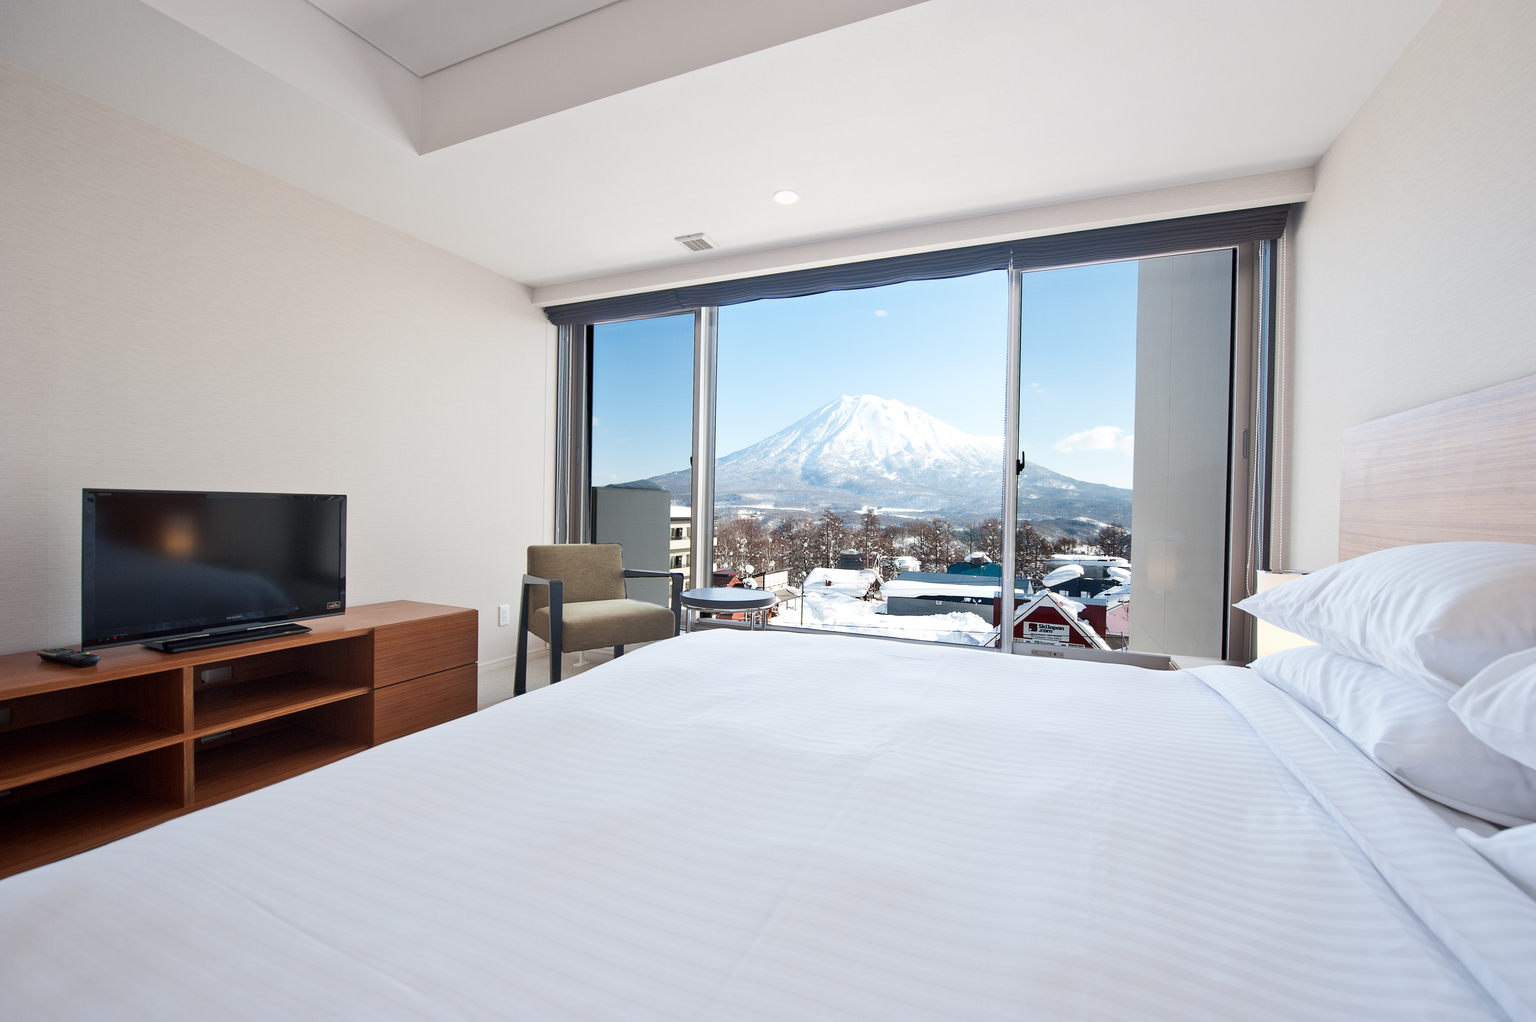 Mabey Ski_Japan_Niseko_Hyatt House Niseko 24.jpg